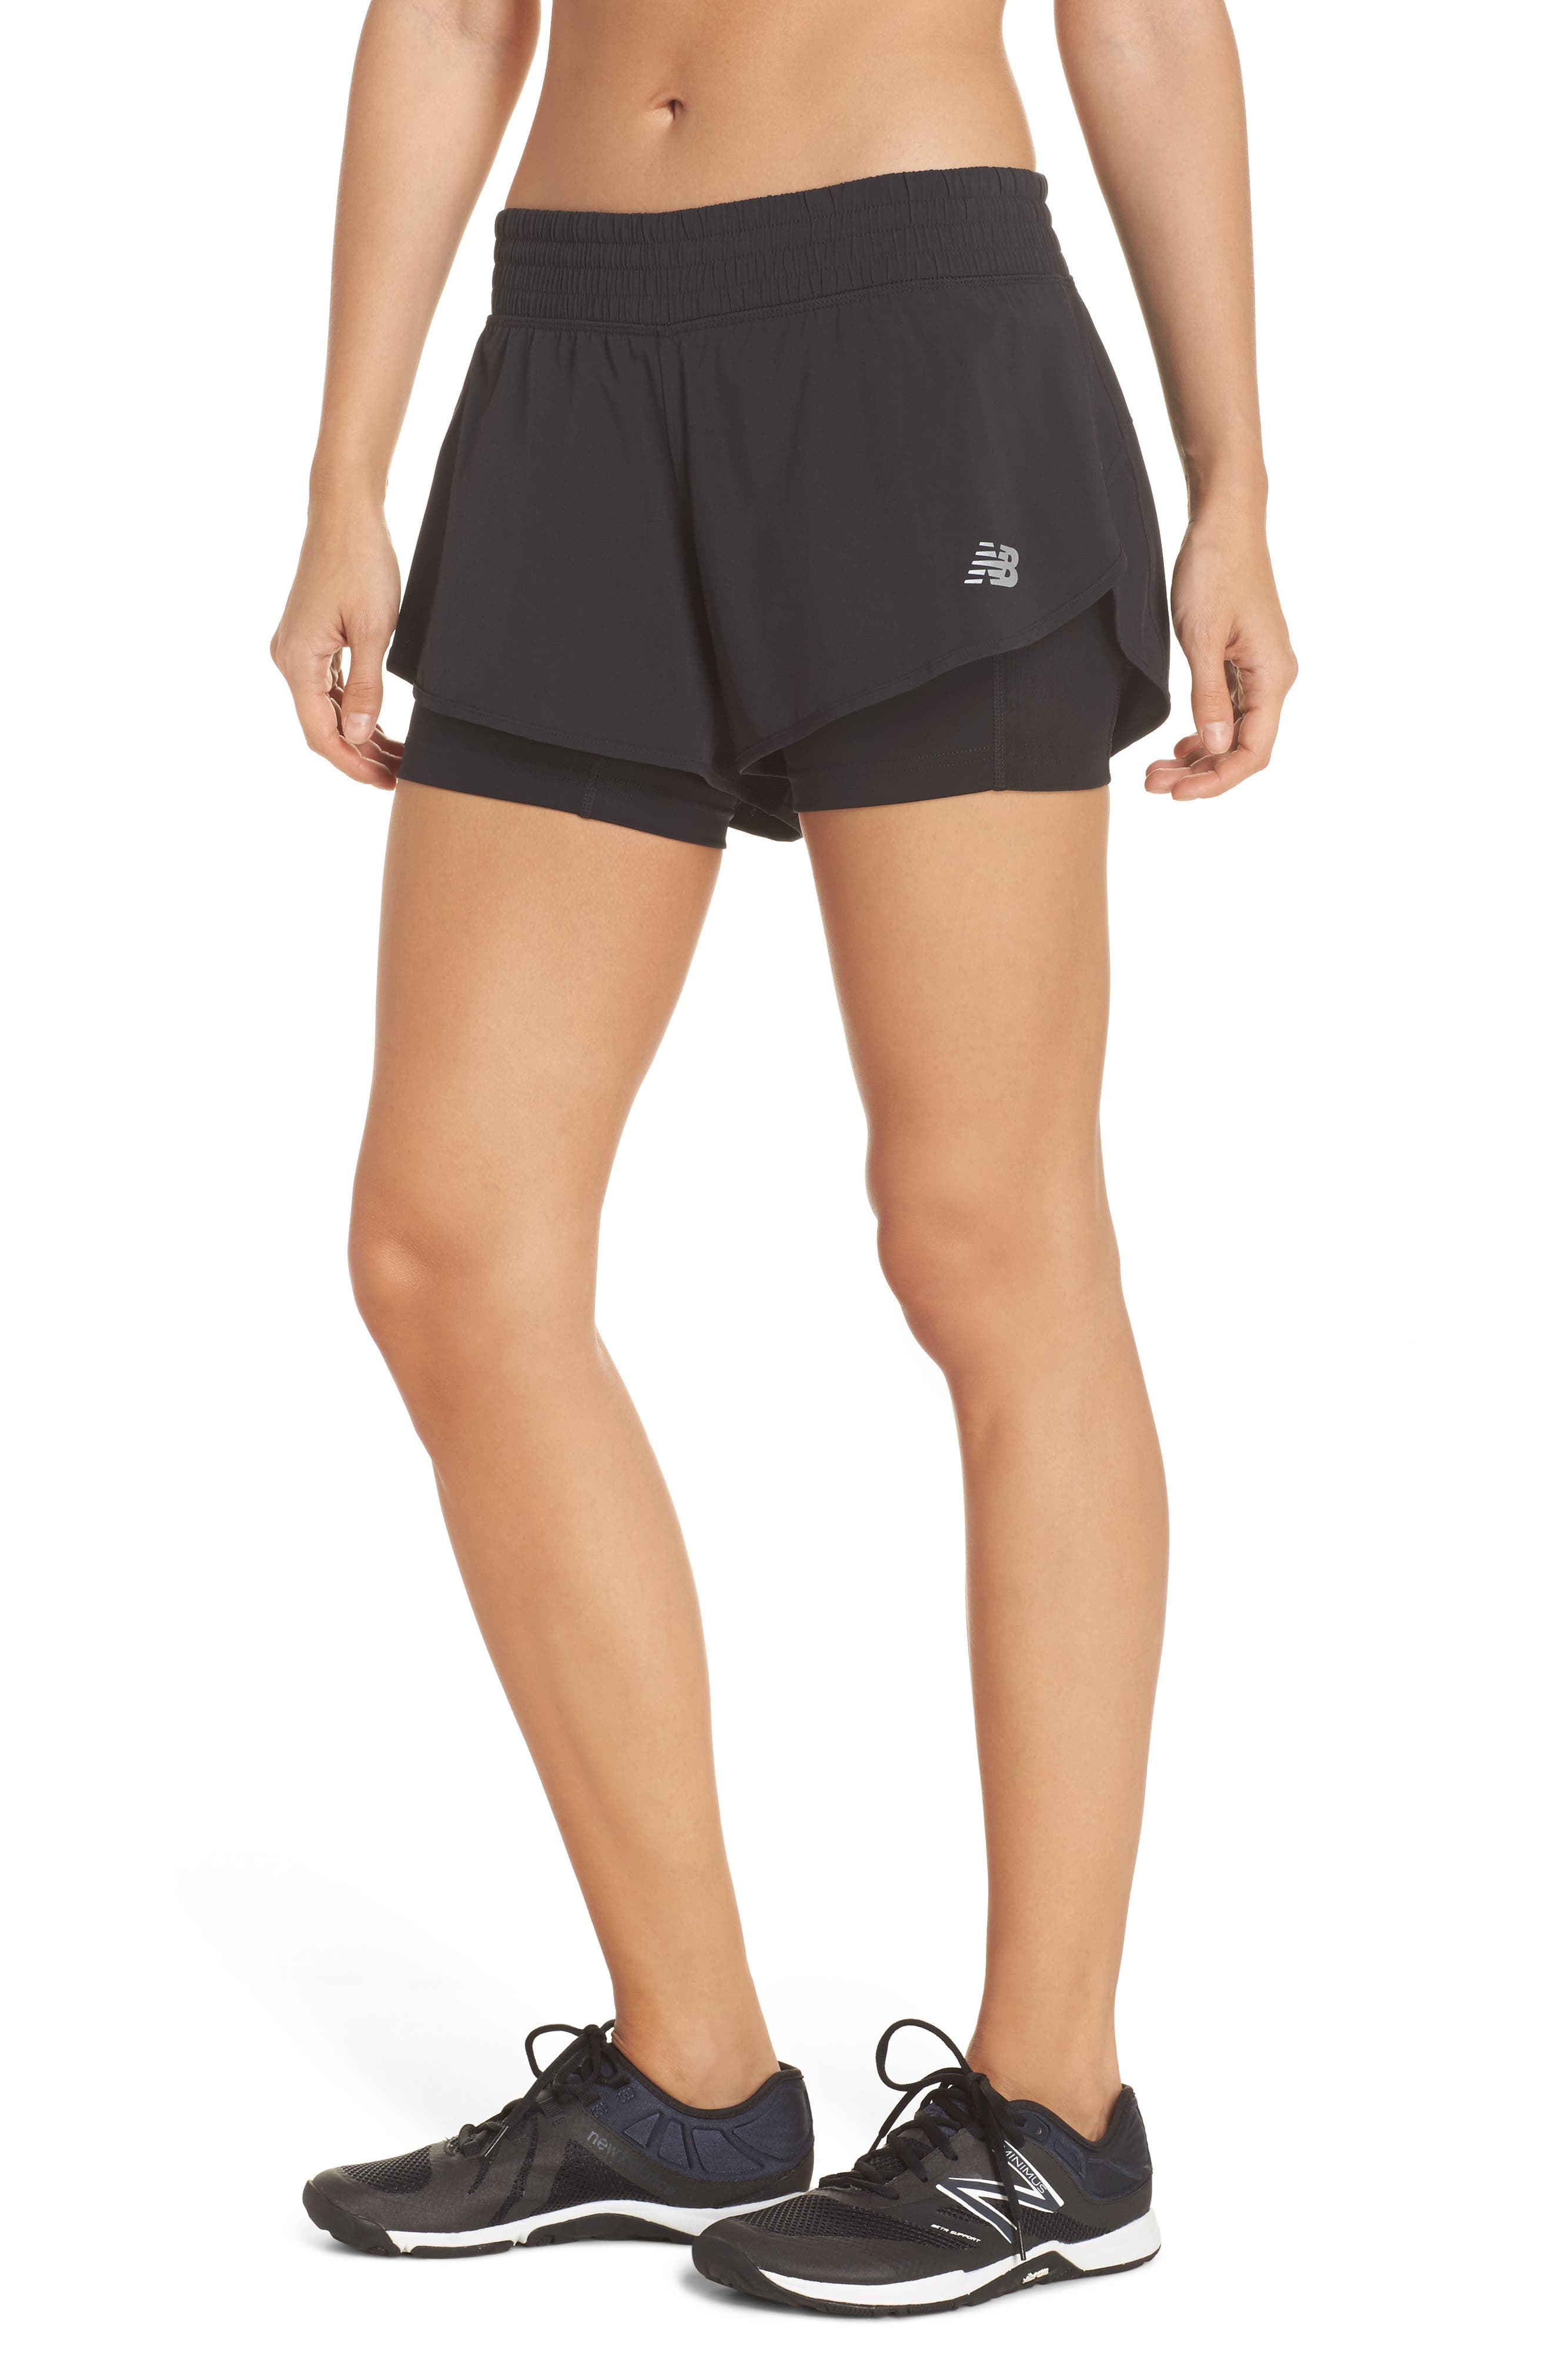 Impact Layered Running Shorts,                             Main thumbnail 1, color,                             001